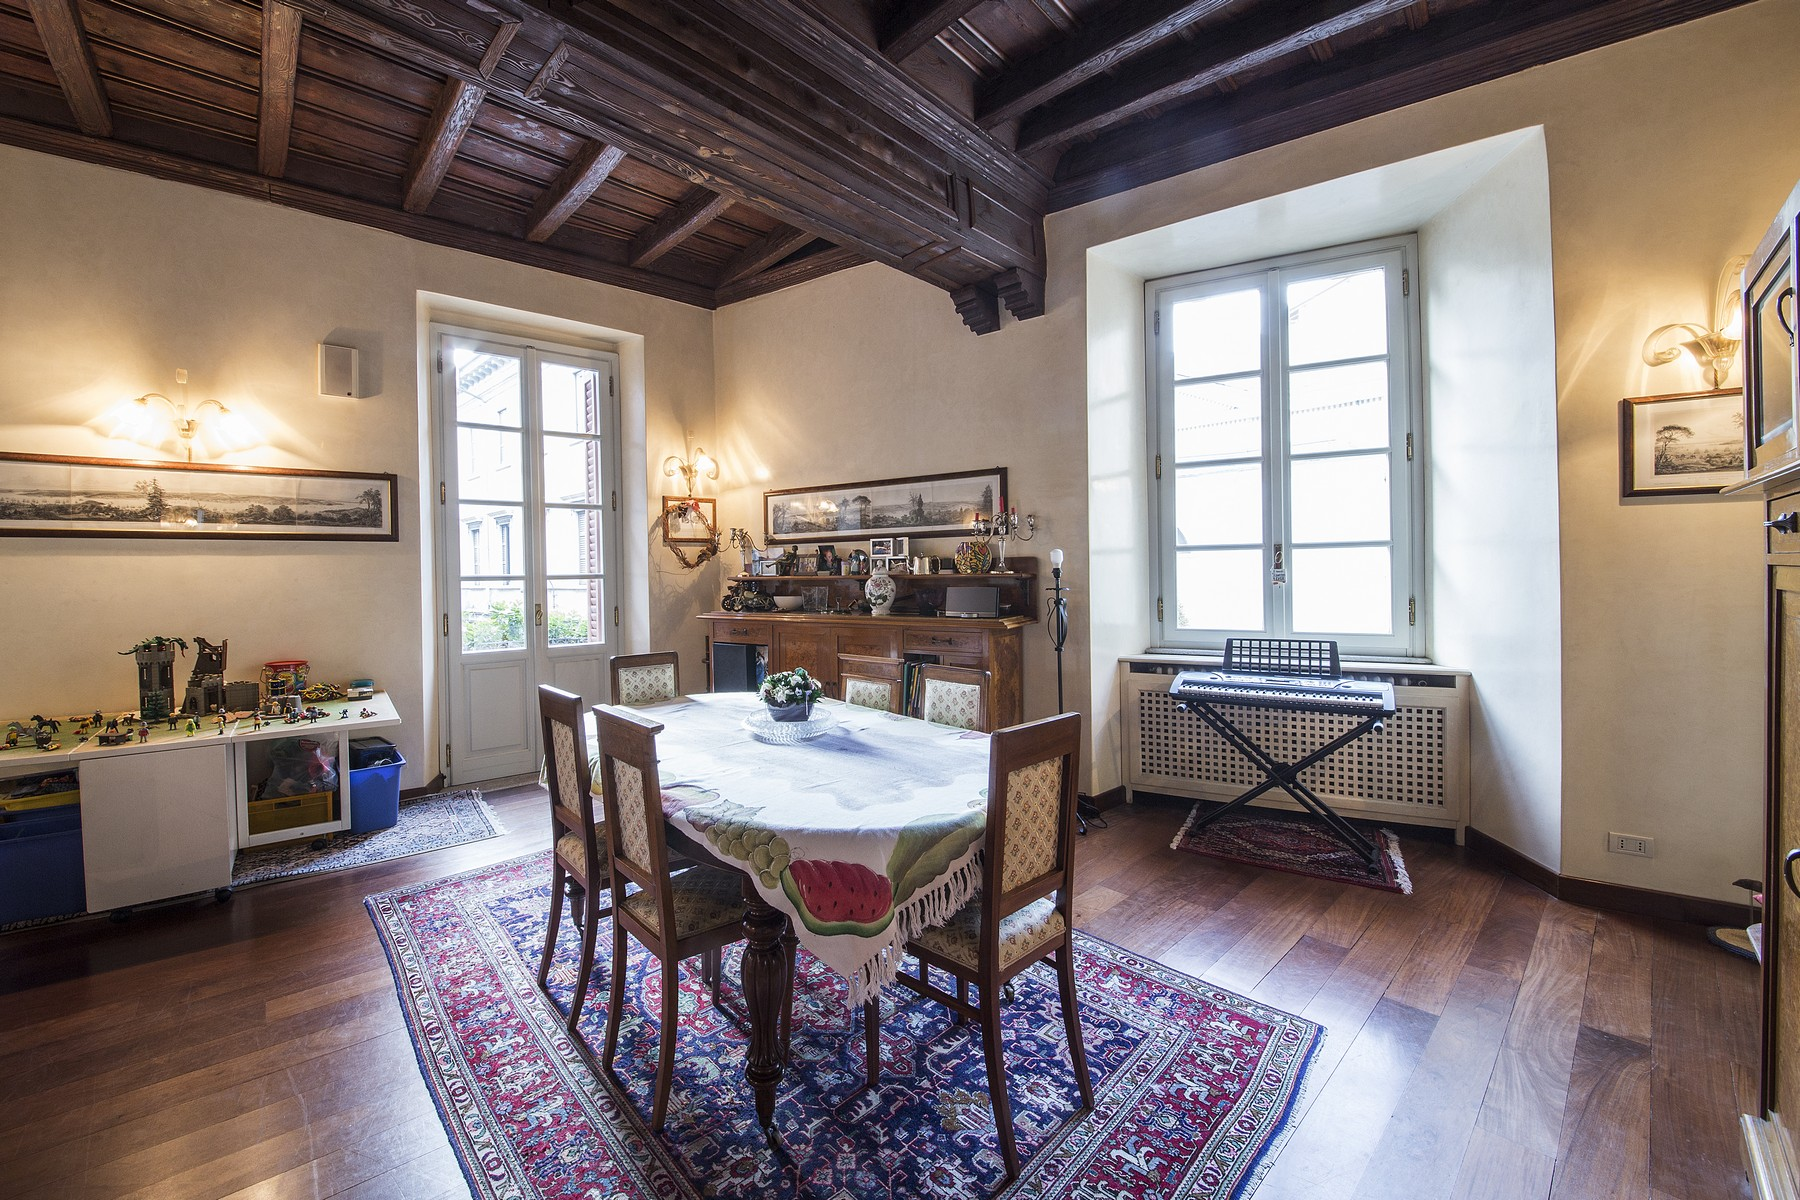 Additional photo for property listing at Wonderful apartment in prestigious building in the center of Como Via Bonanomi Como, Como 22100 Italy